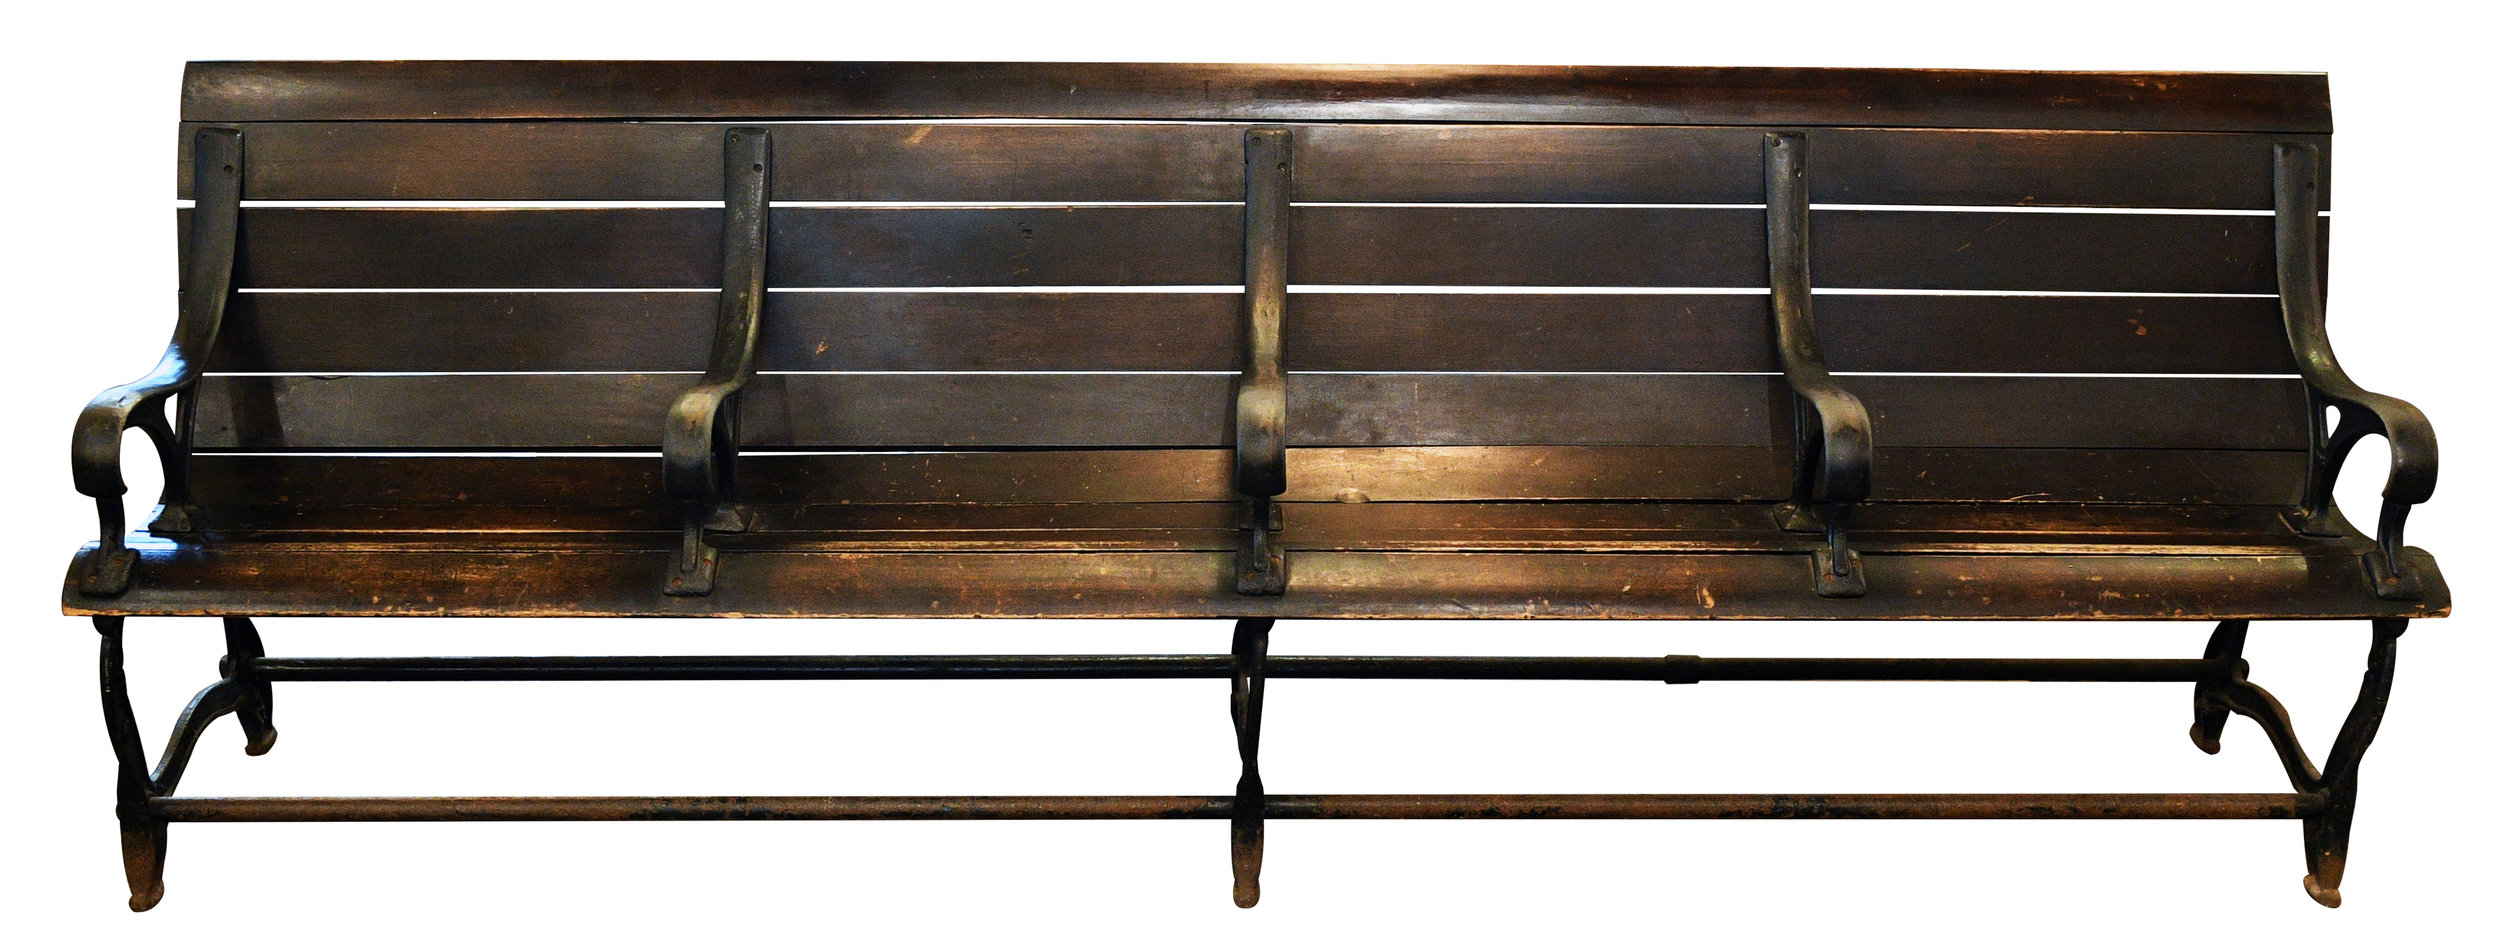 48005-divided-wood-and-iron-bench-front.jpg